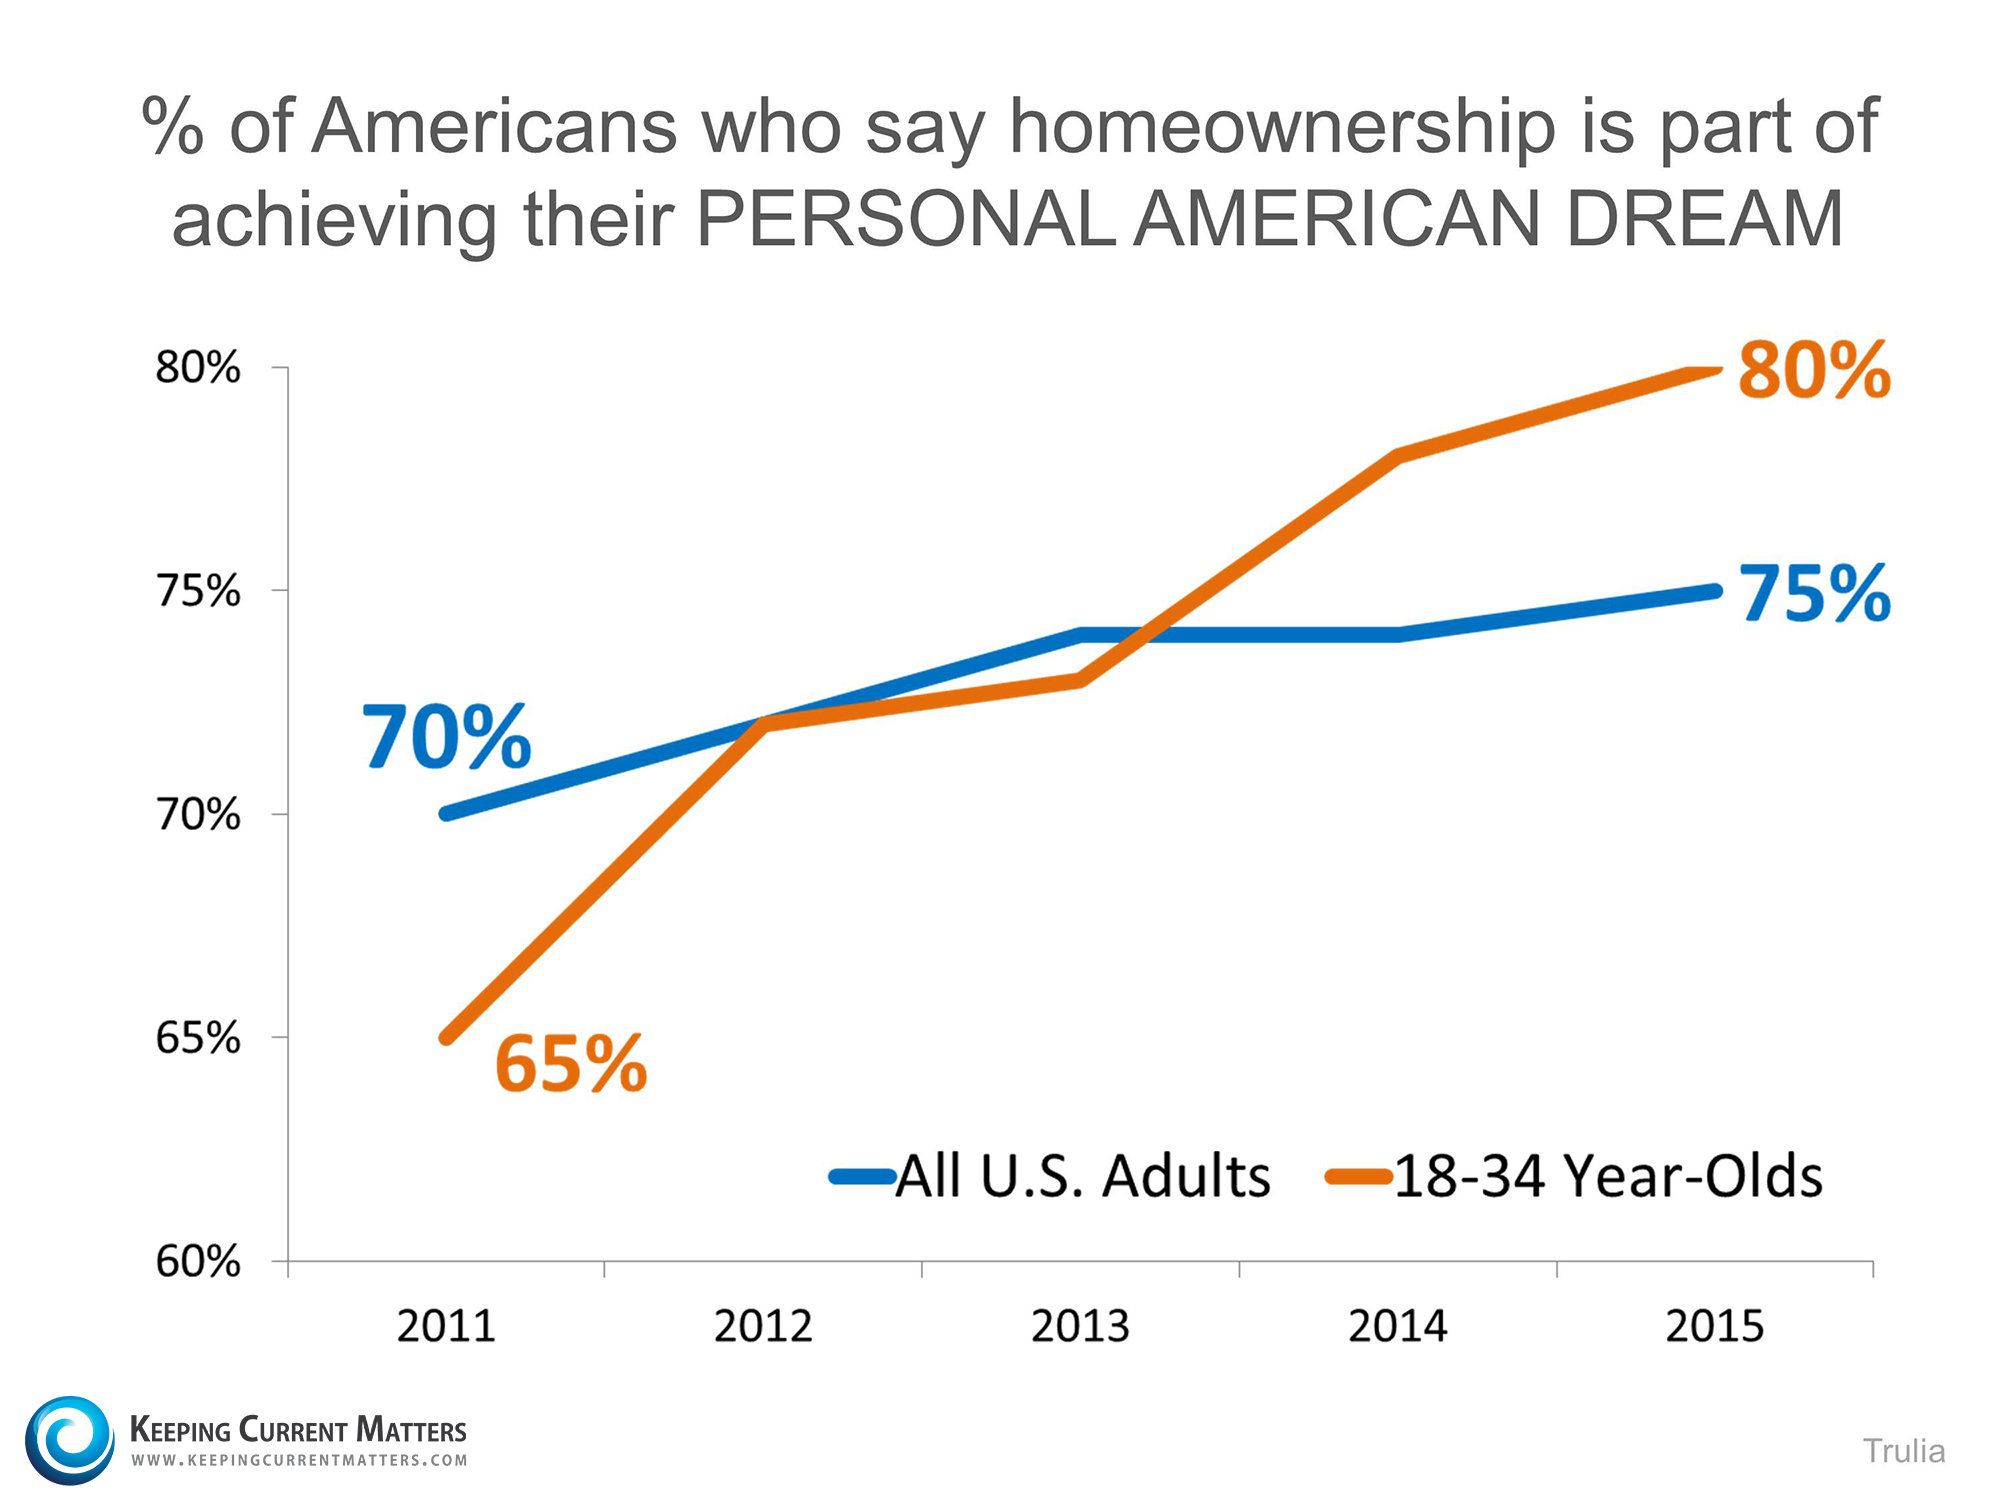 American Dream of Homeownership   Keeping Current Matters